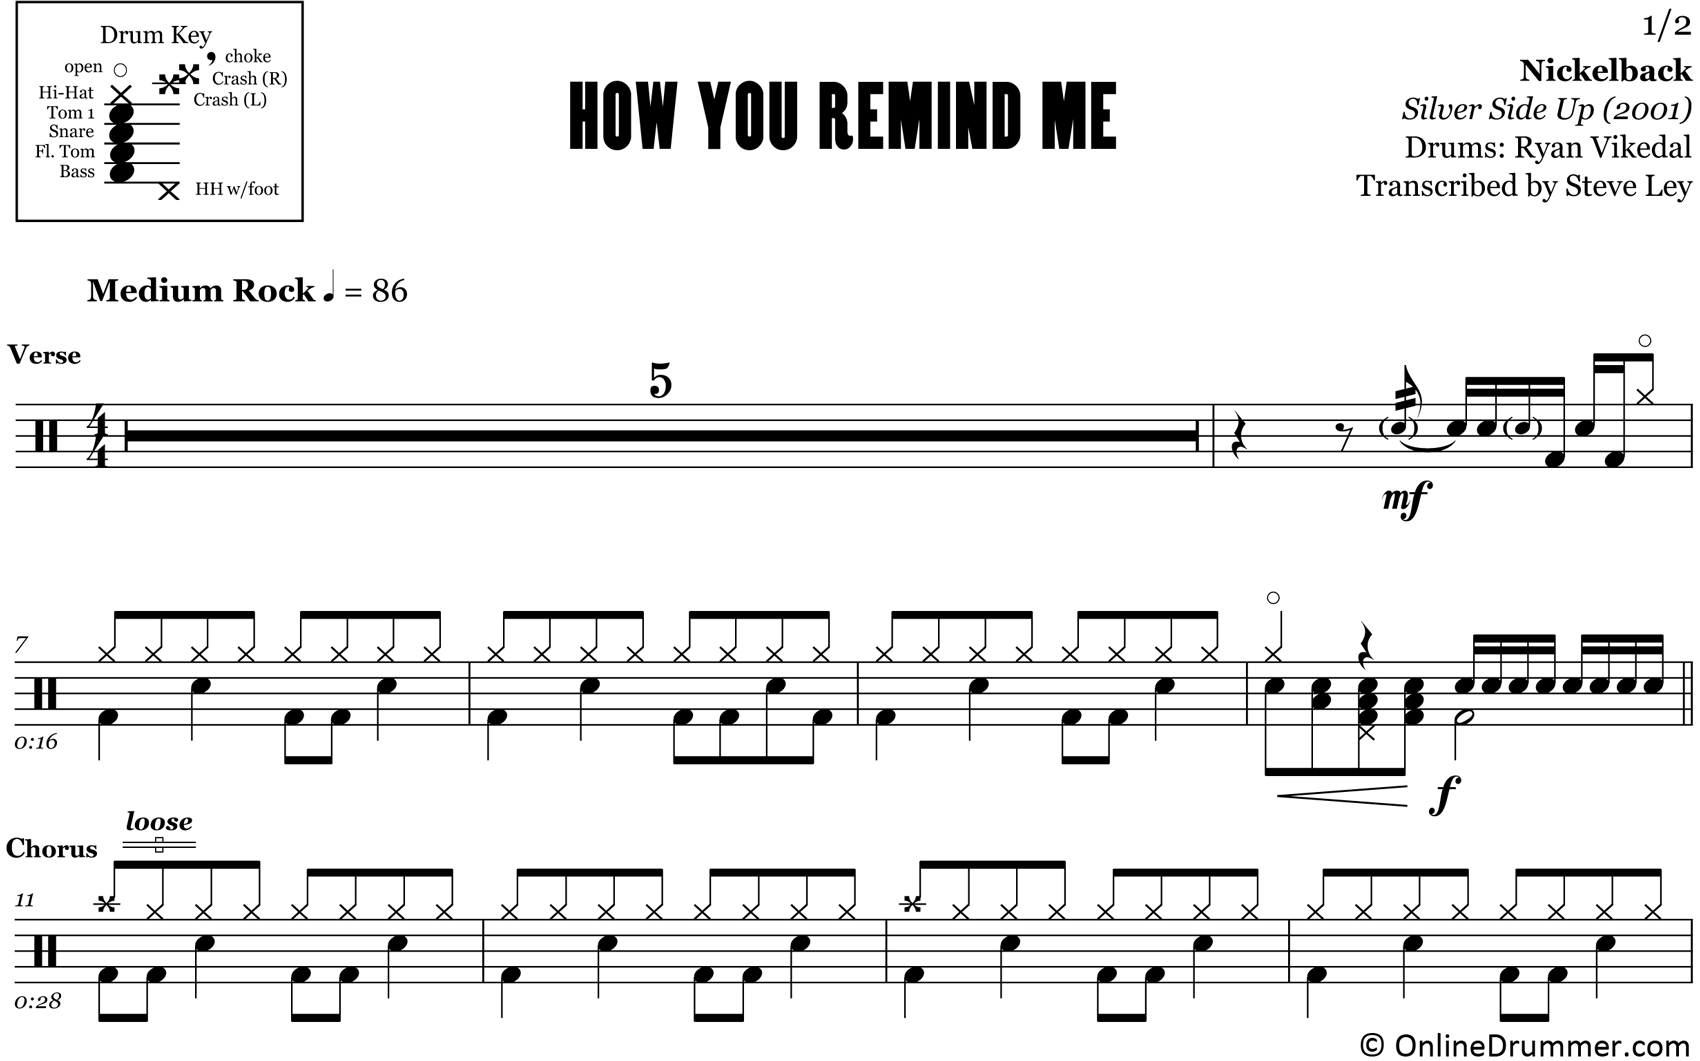 How You Remind Me - Nickelback - Drum Sheet Music